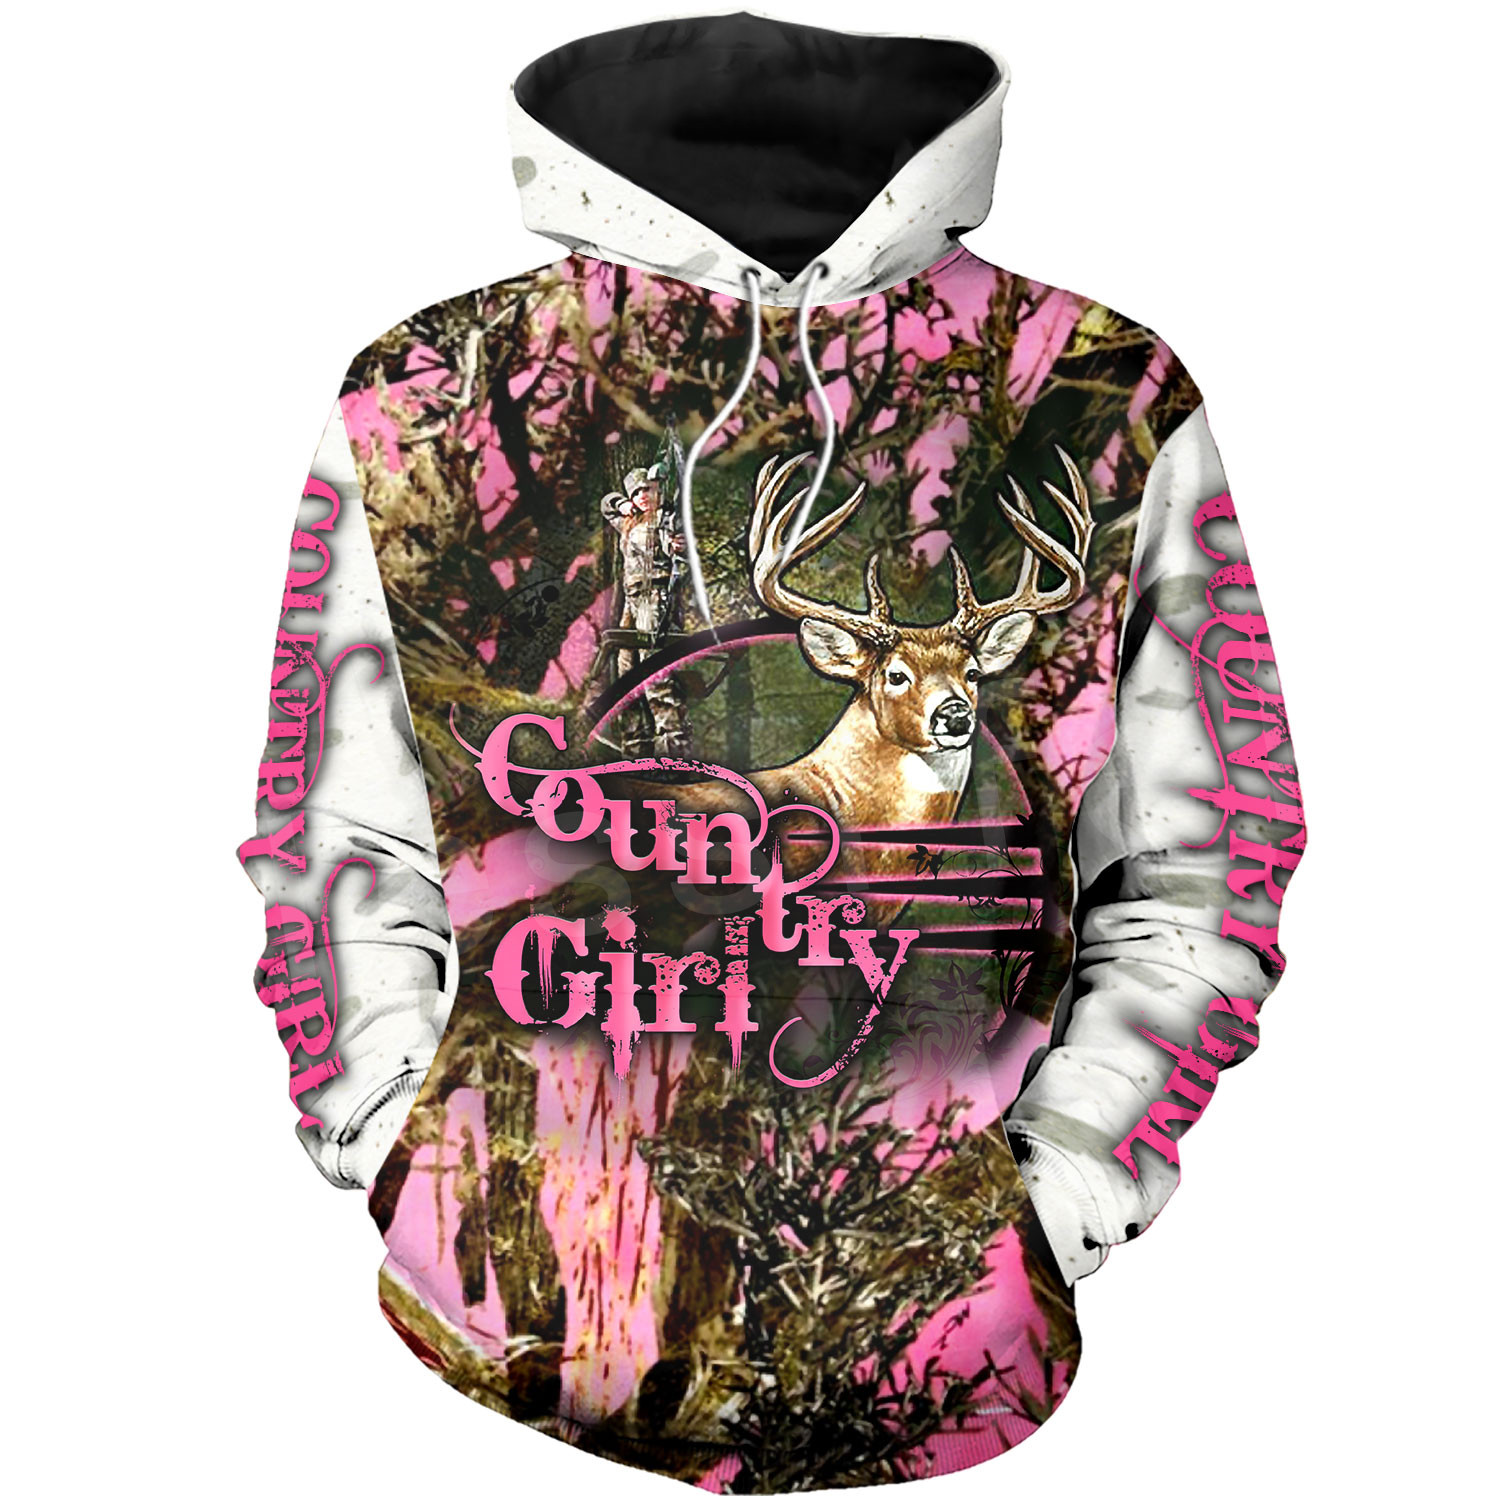 Tessffel Animal Deer Hunter Colorful Camo New Fashion Tracksuit Casual 3DPrint Hoodie/Sweatshirt/Jacket/Mens Womens S-3